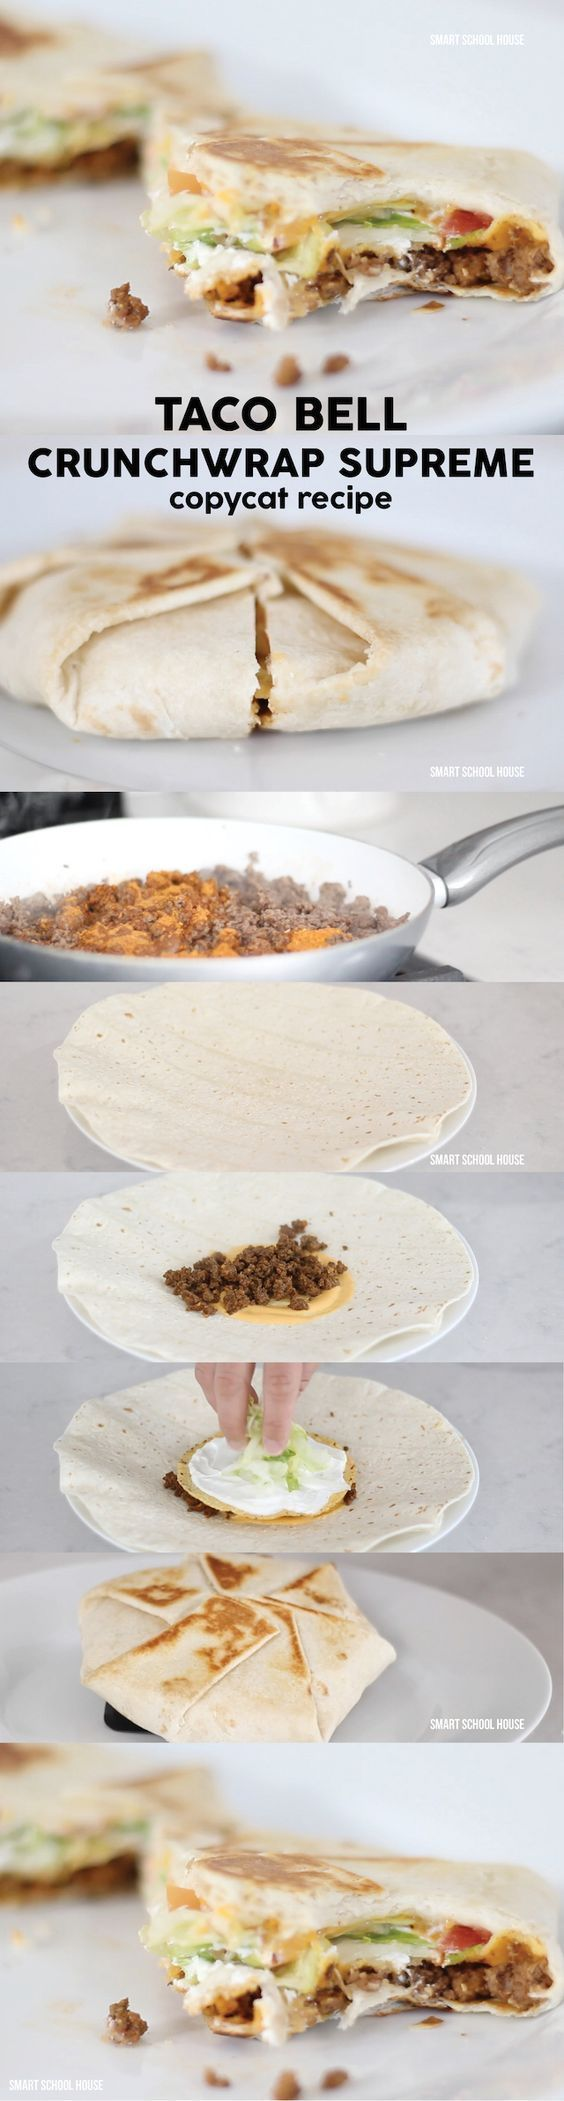 DIY Taco Bell Crunchwrap Recipe - Smart School House DIY Taco Bell Crunchwrap Supreme copycat recipe to make a home. Saving this!